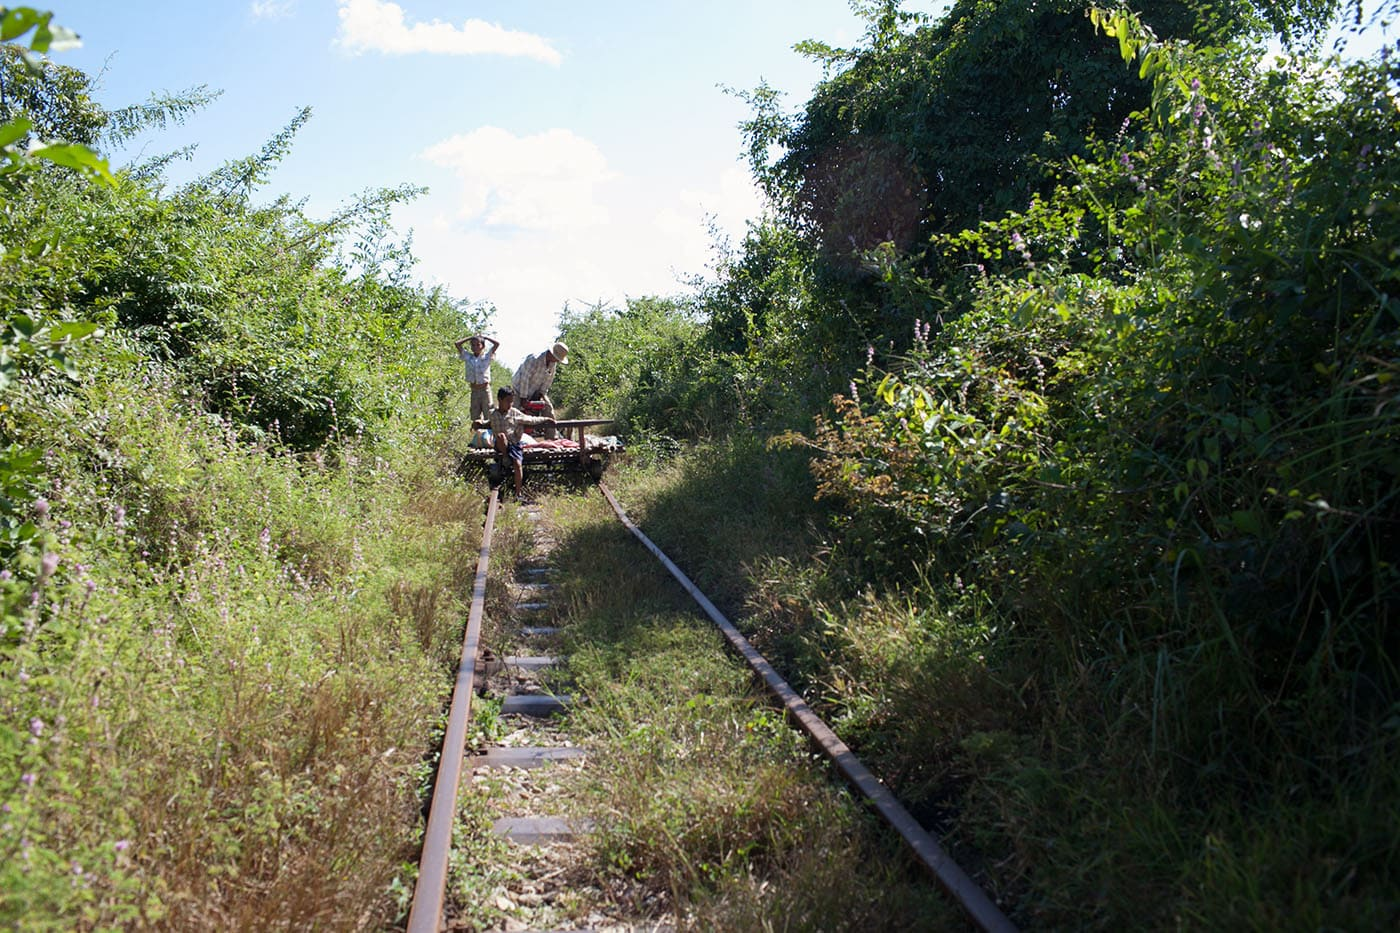 Riding the bamboo railroad in Battambang, Cambodia